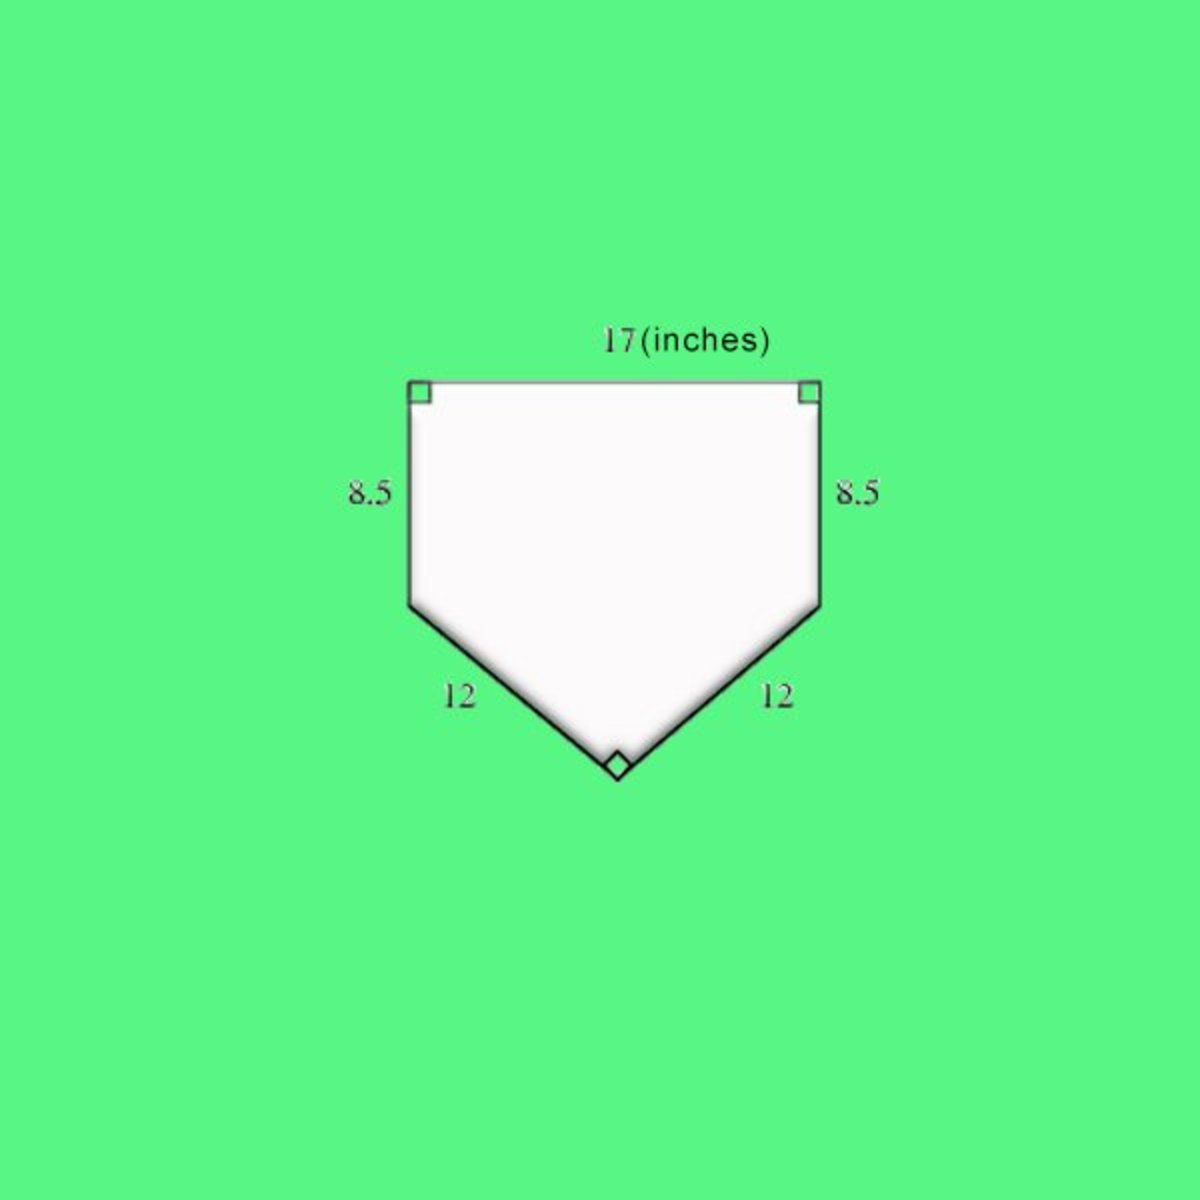 Dimensions for Home Plate in baseball